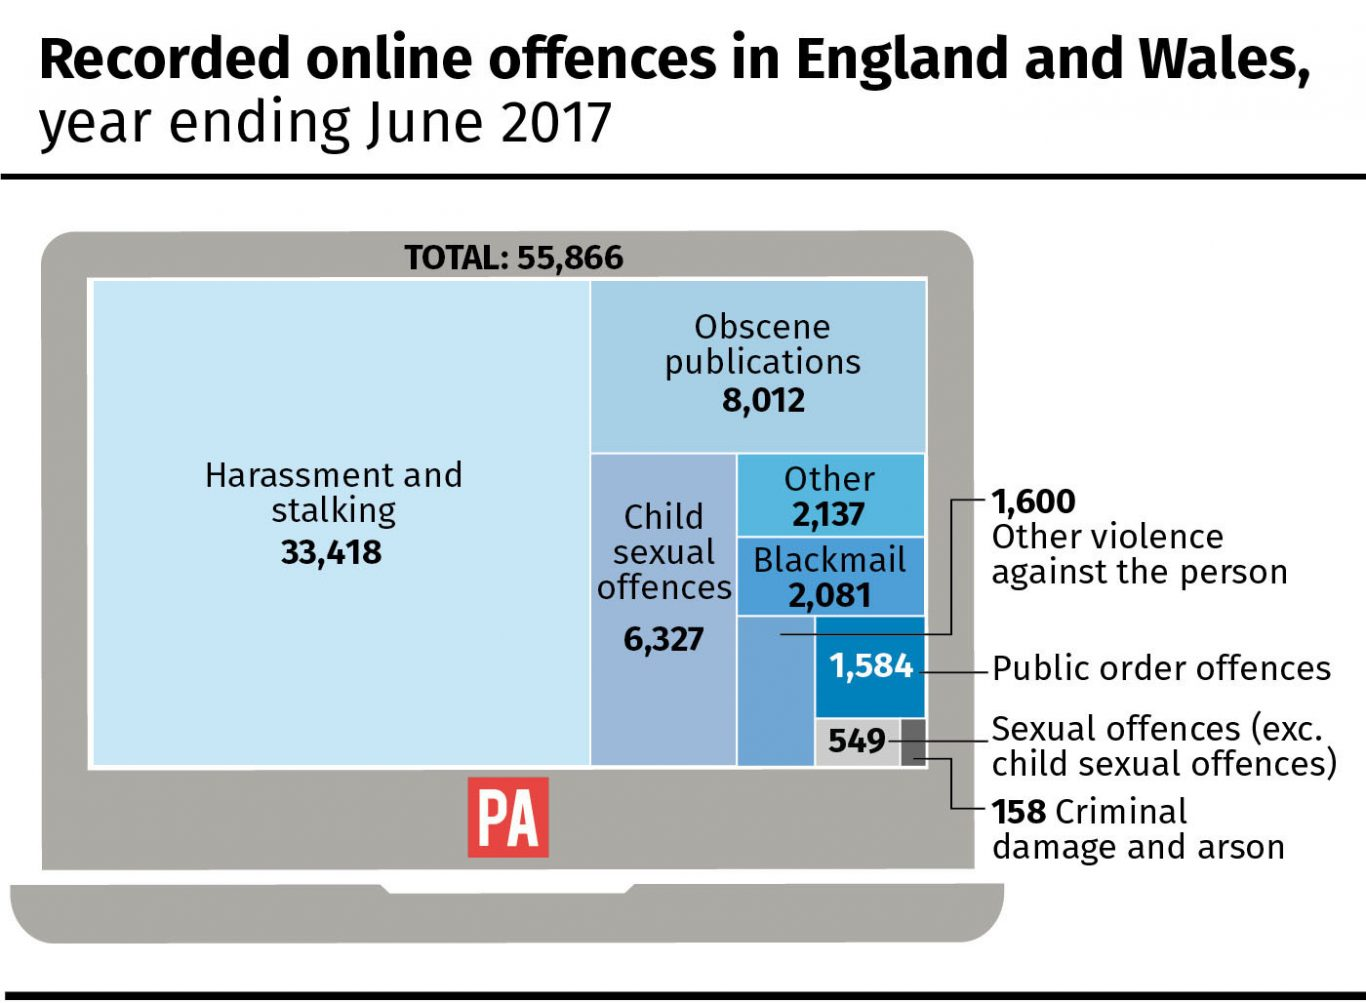 Recorded online offences in England and Wales, year ending June 2017